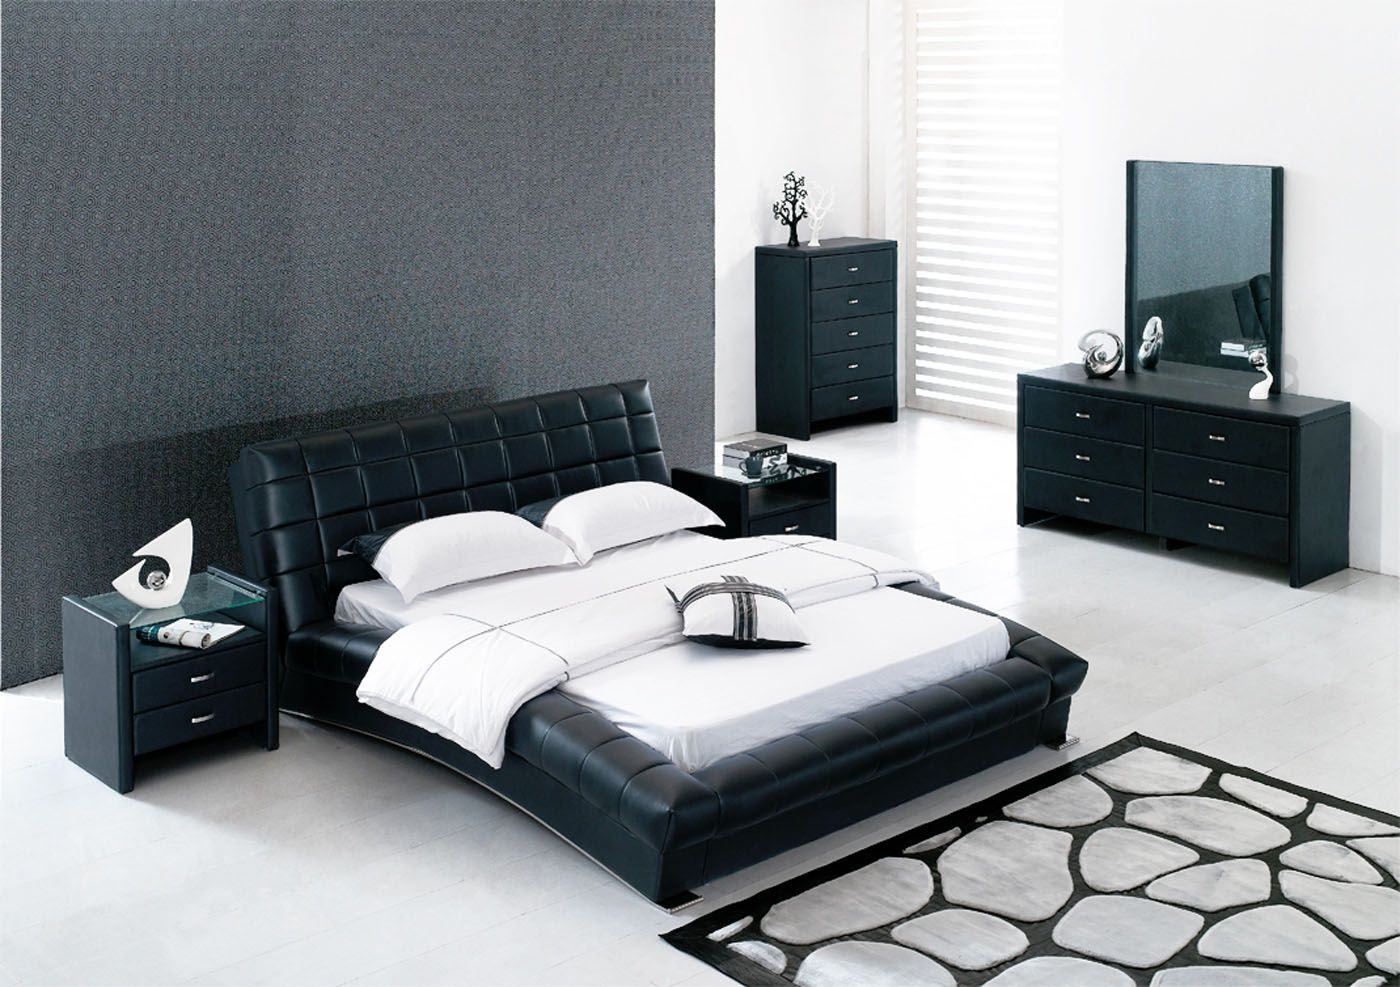 Black Contemporary Bedroom Set Cool Black Leather Bedroom Furniture For Contemporary Bedroom Sets With Decorating Design